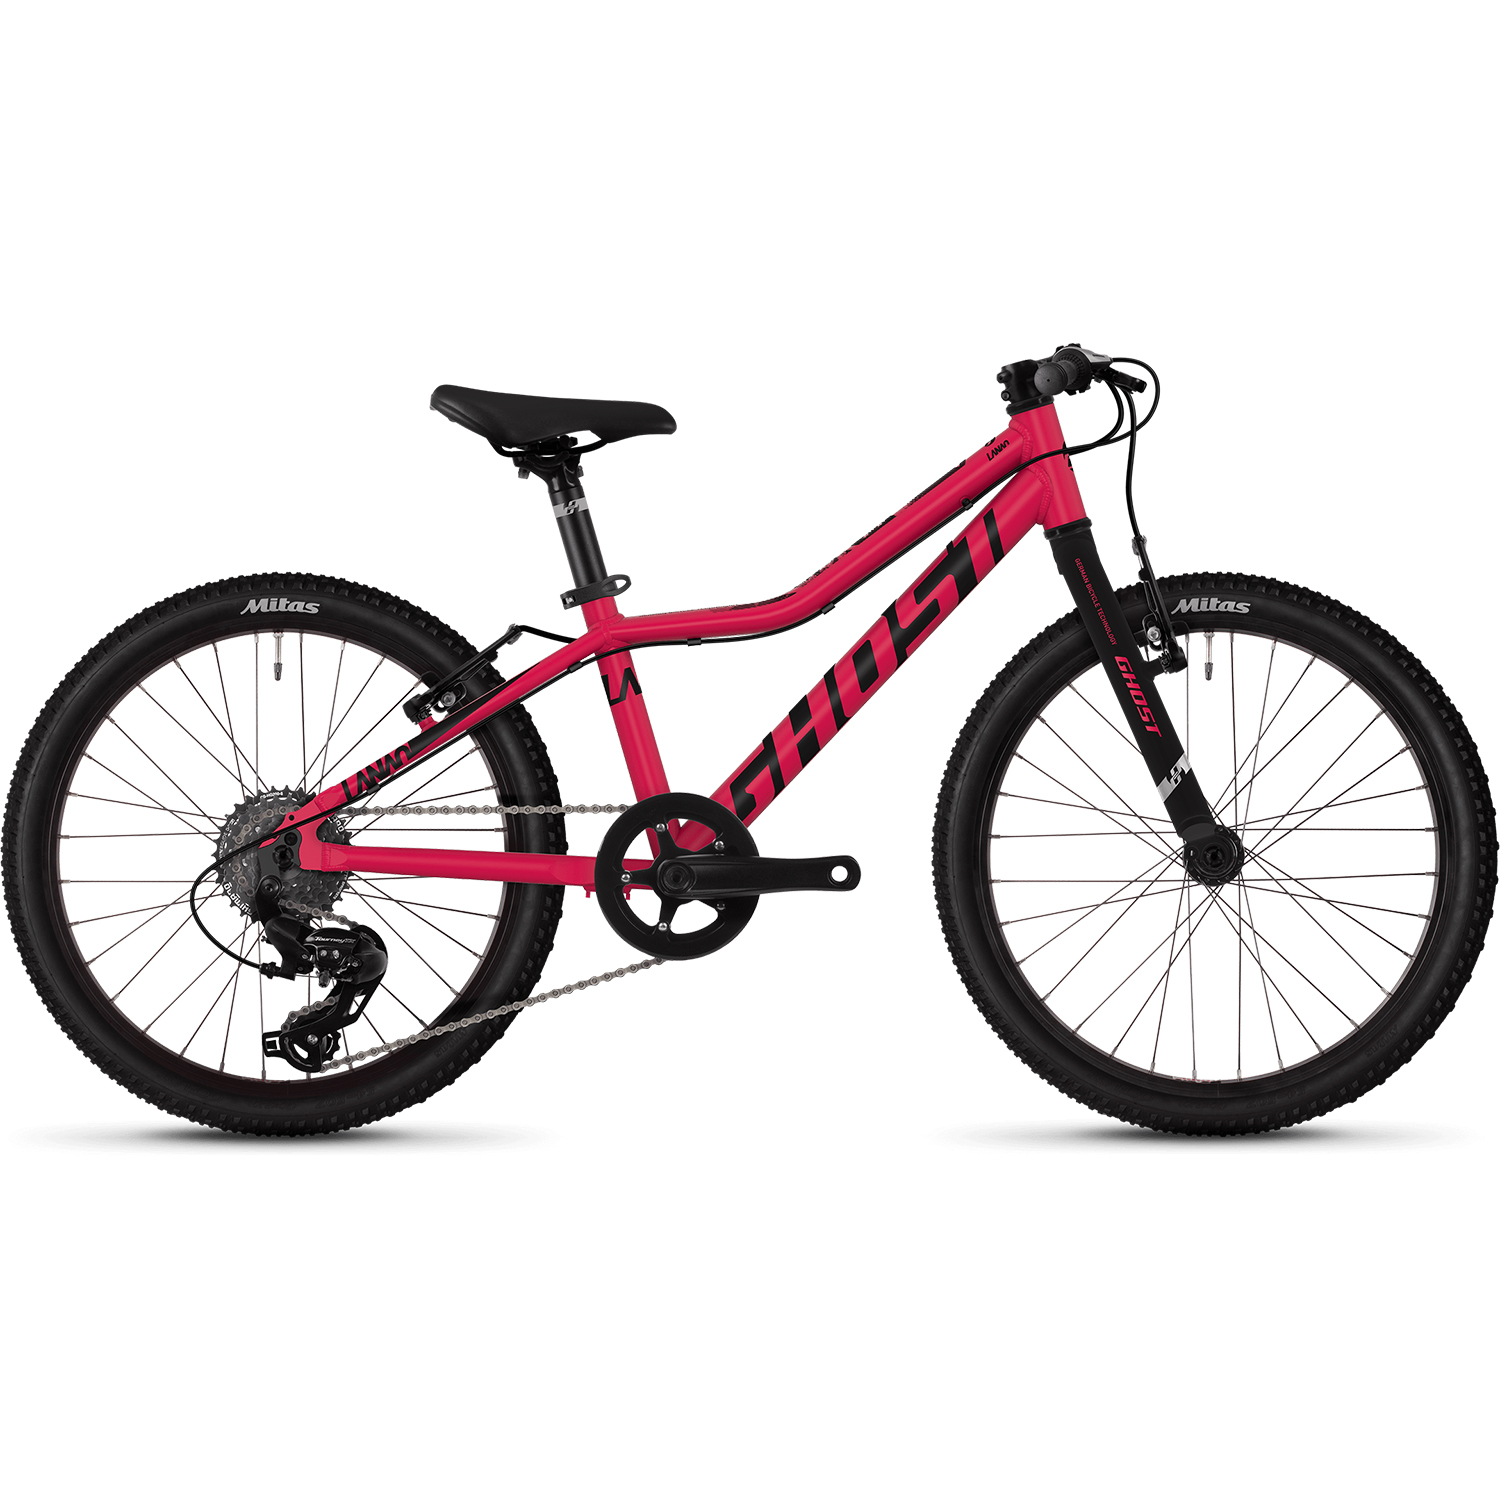 ghost lanao r1 0 al w 20 zoll mountainbike hardtail. Black Bedroom Furniture Sets. Home Design Ideas